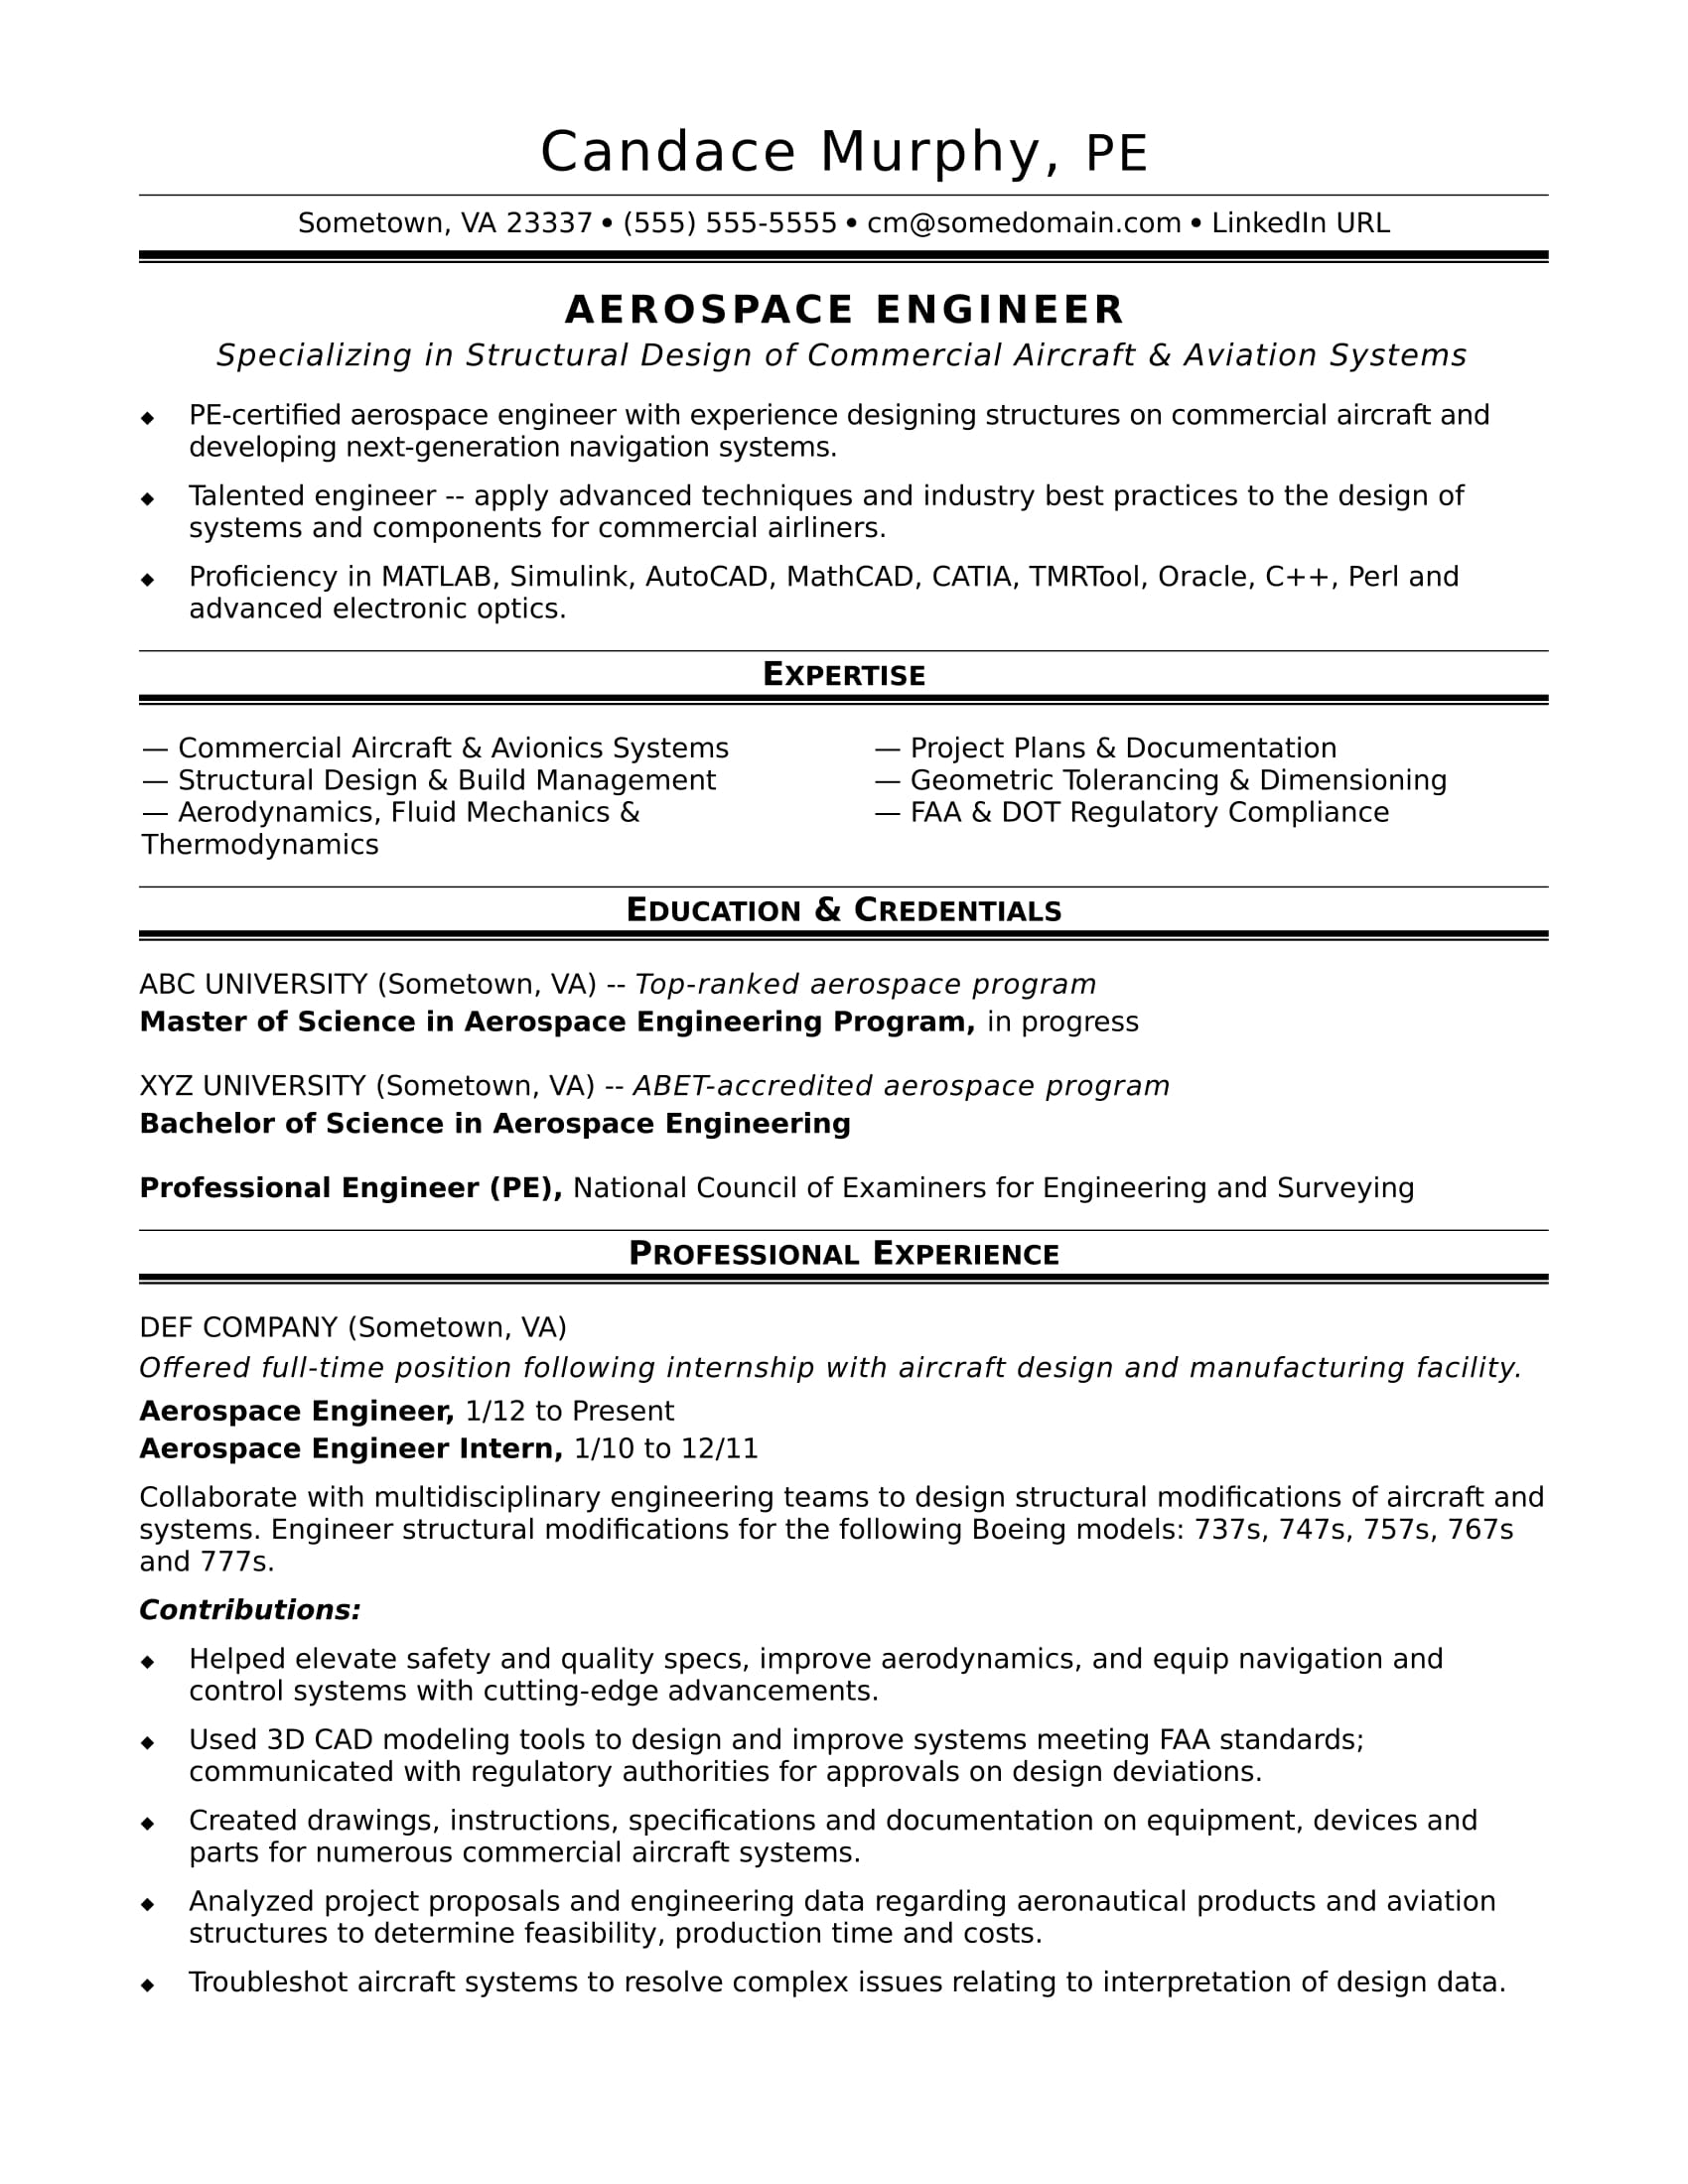 Sample Resume for a Midlevel Aerospace Engineer | Monster.com